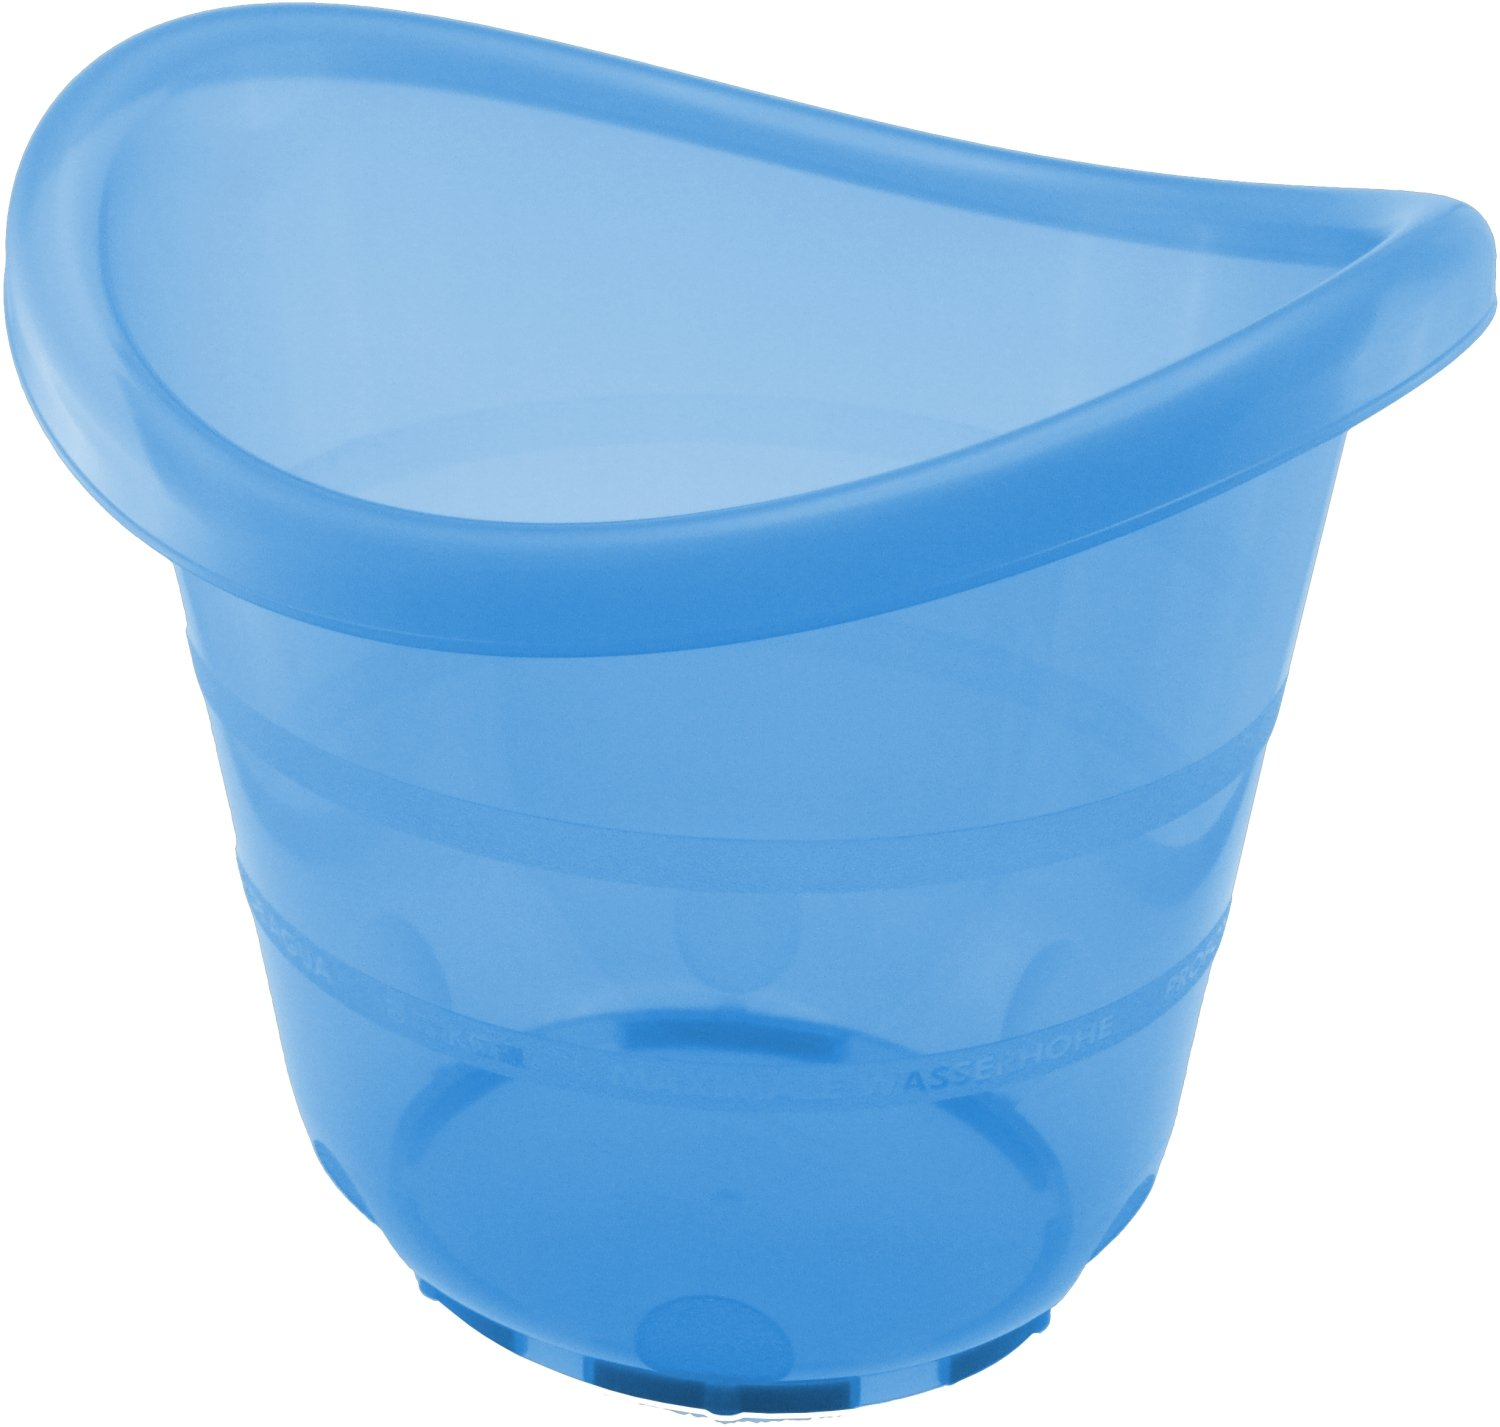 Bieco 196061 Baby Bathtub Blue 79000061